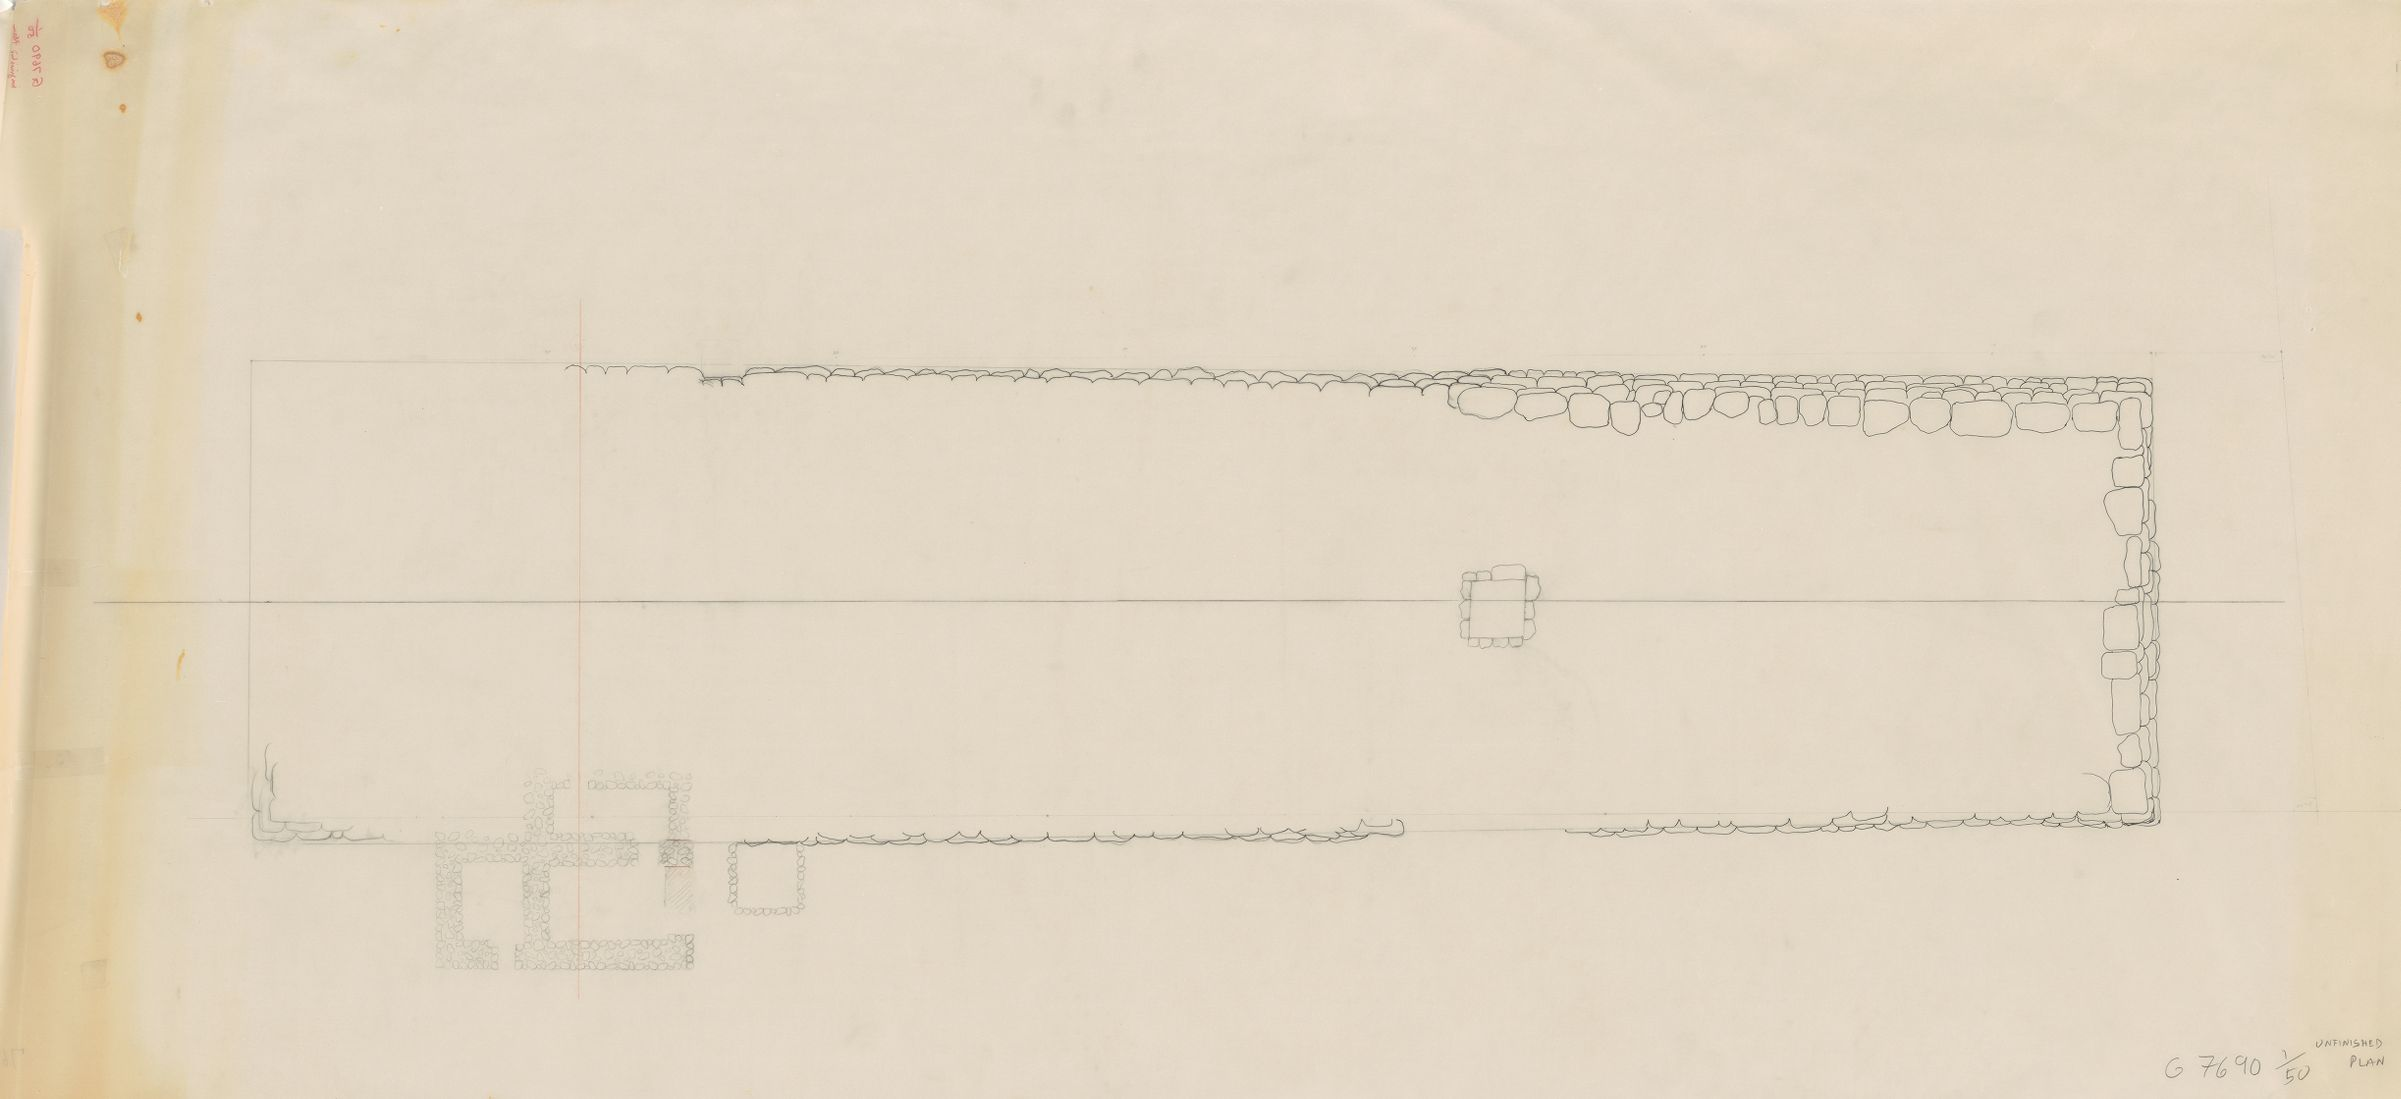 Maps and plans: G 7690, Plan